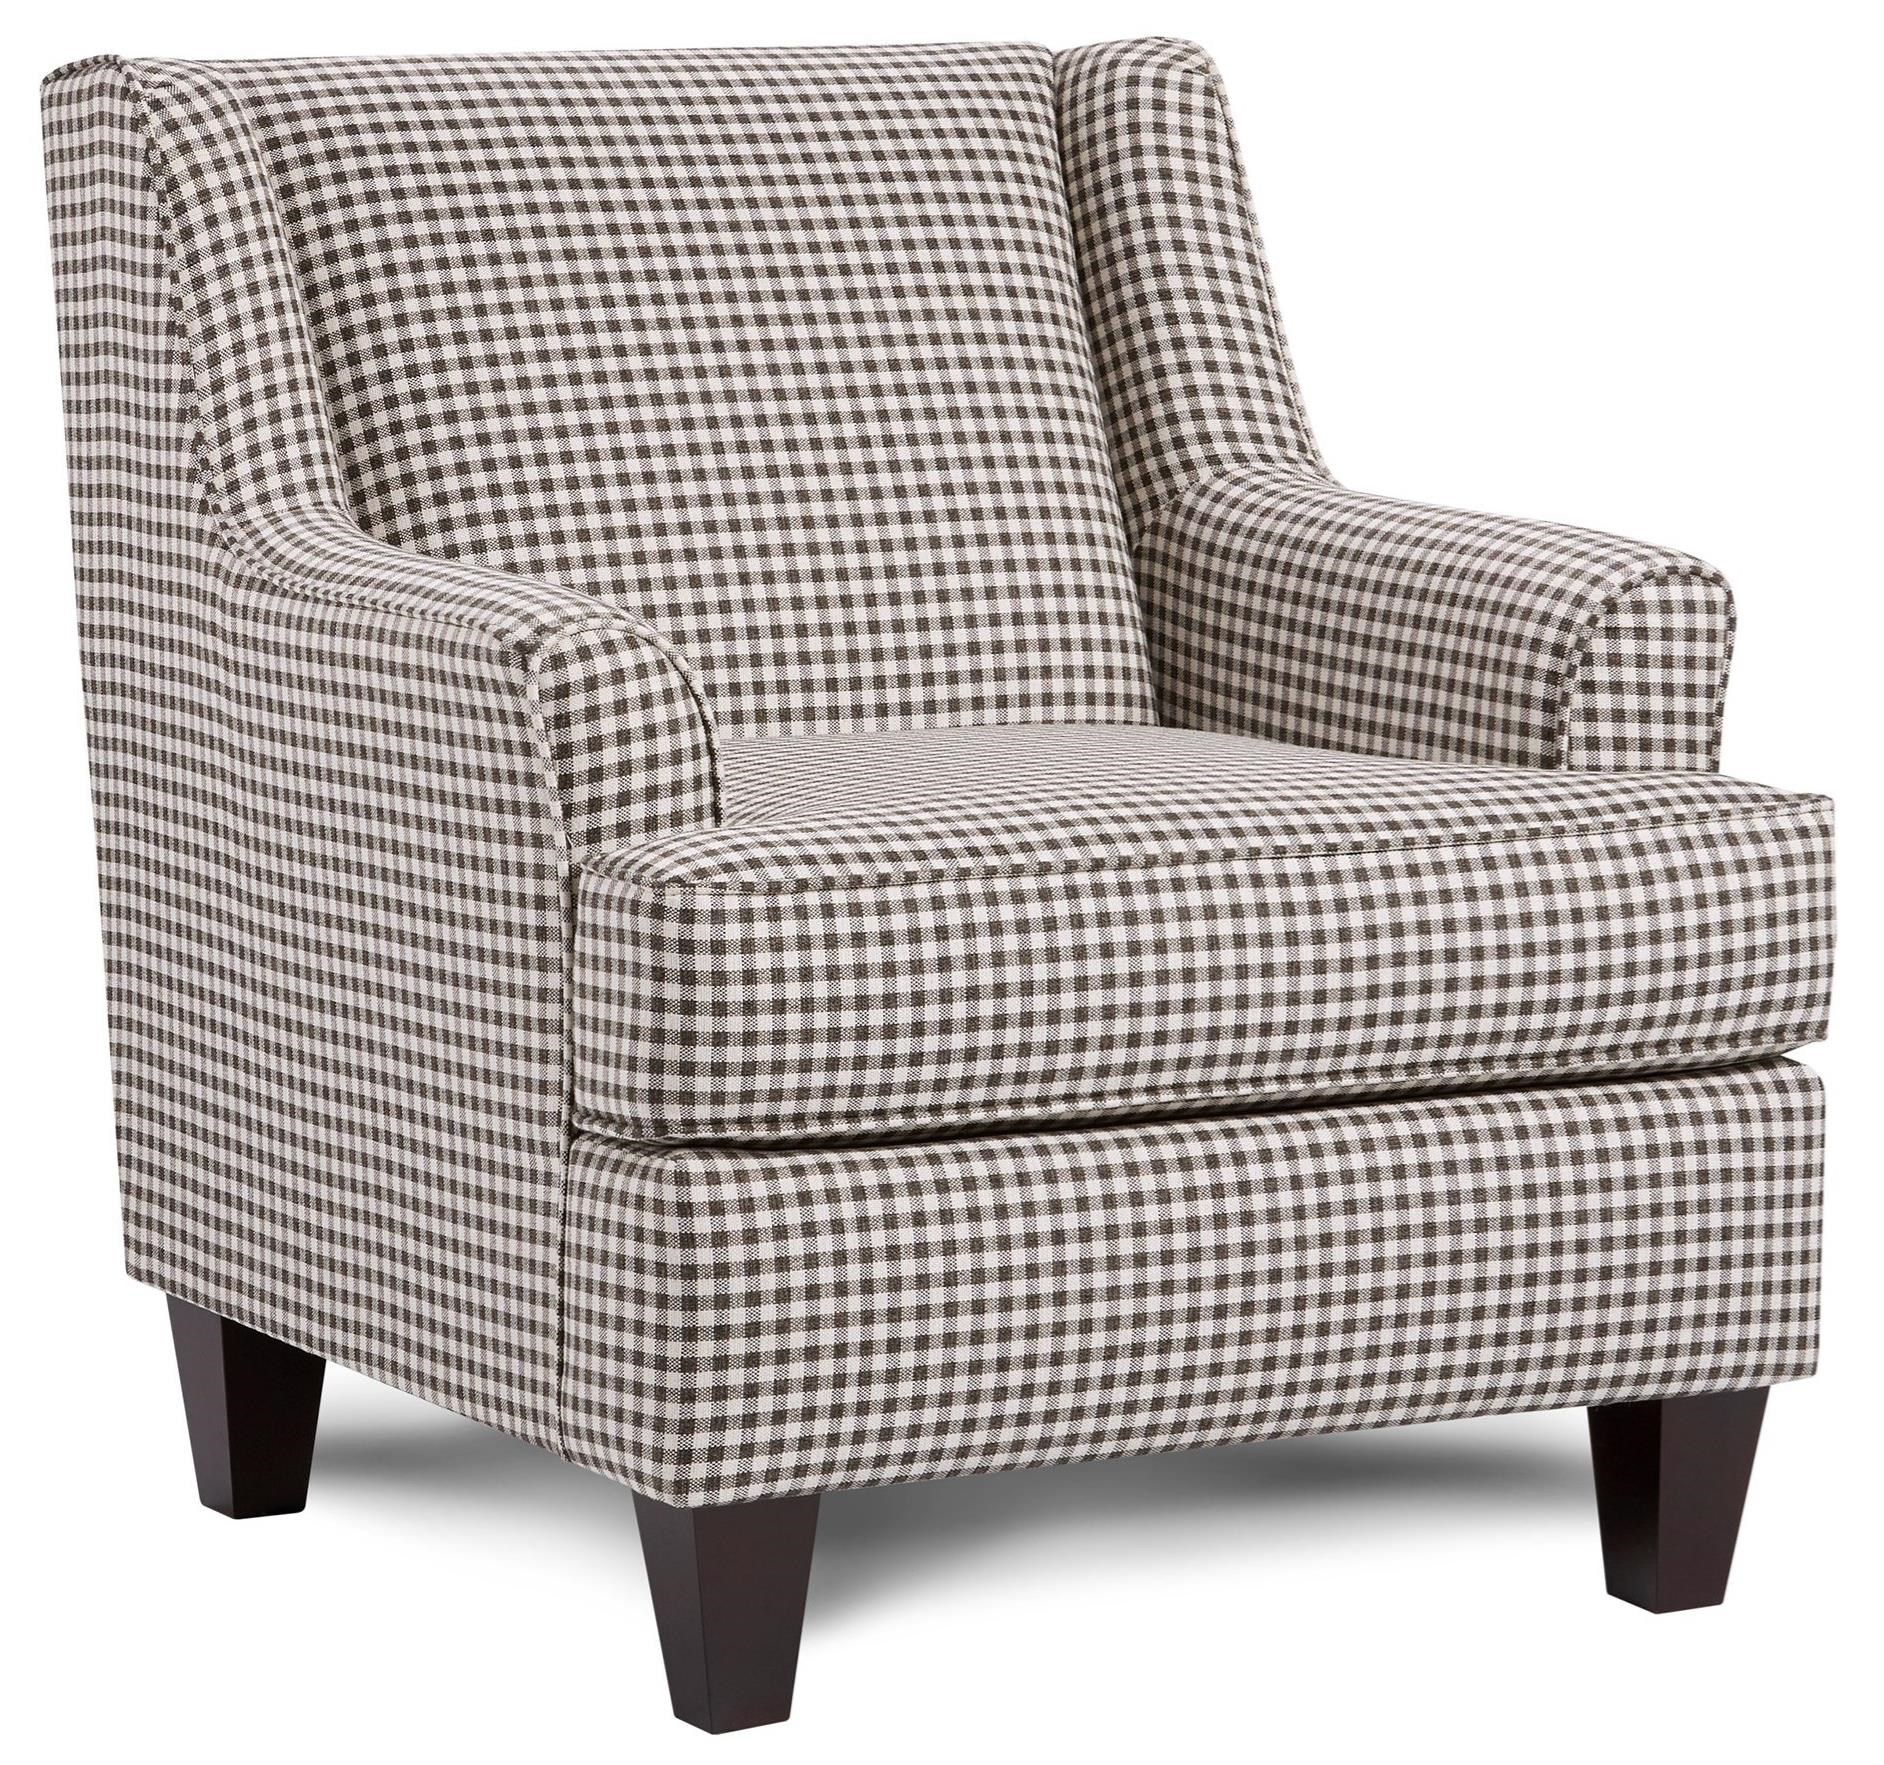 340 Upholstered Chair by Fusion Furniture at Prime Brothers Furniture